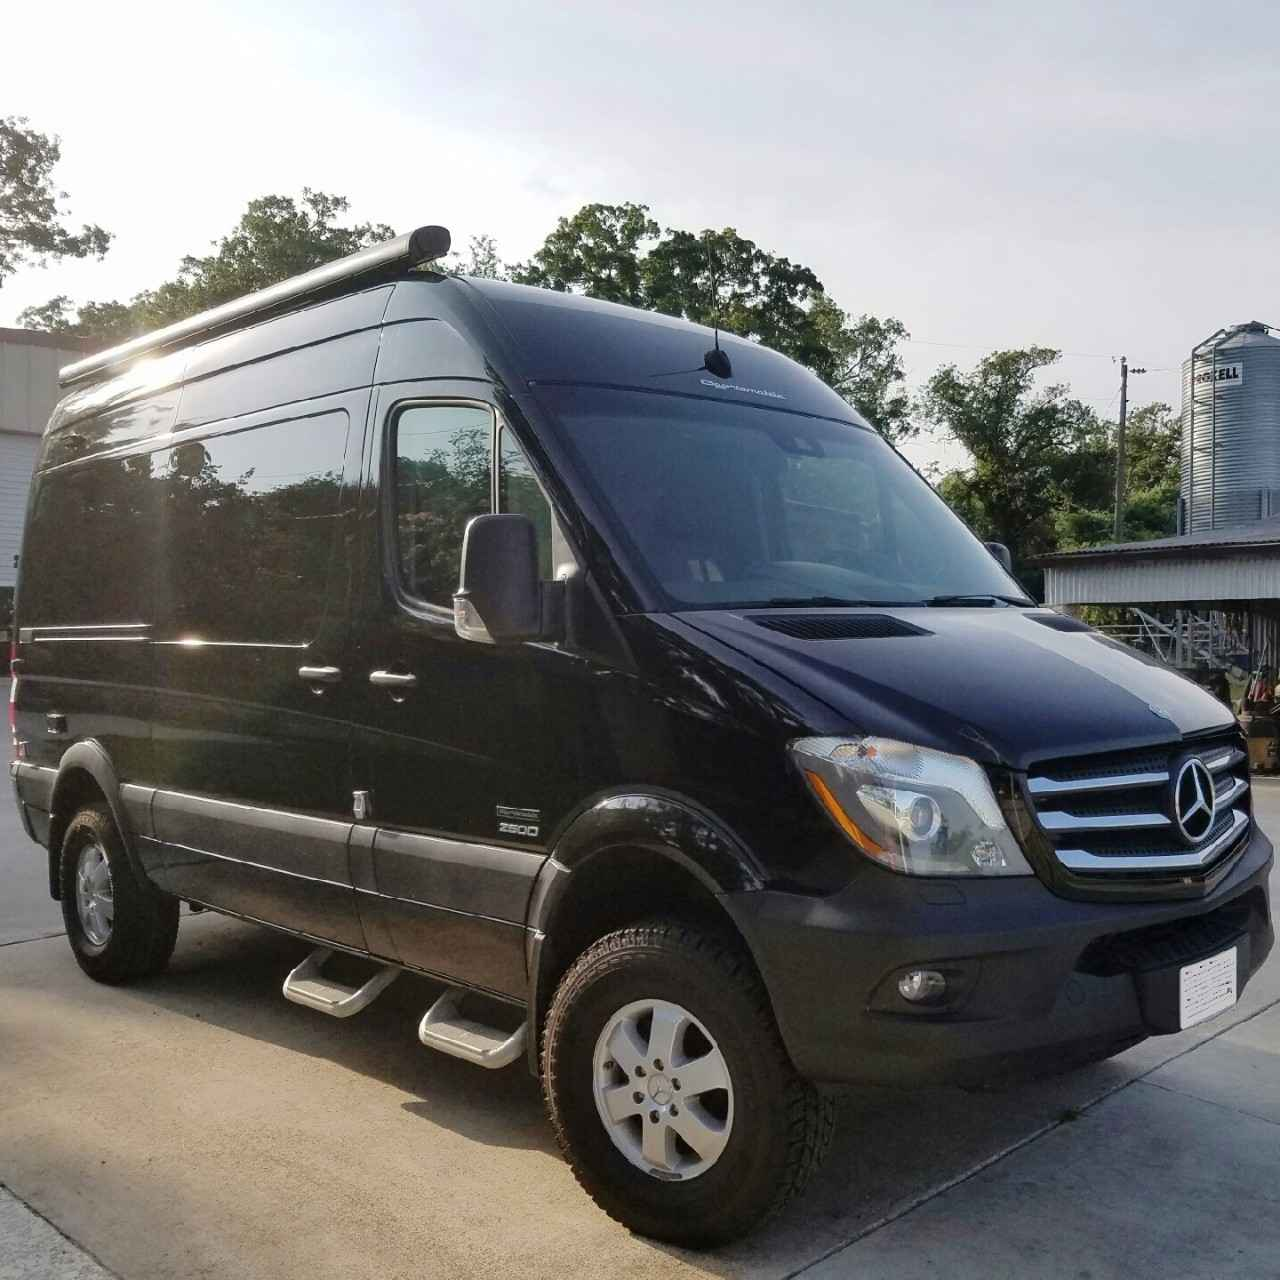 2015 used mercedes benz sprinter 2500 class b in texas tx. Black Bedroom Furniture Sets. Home Design Ideas